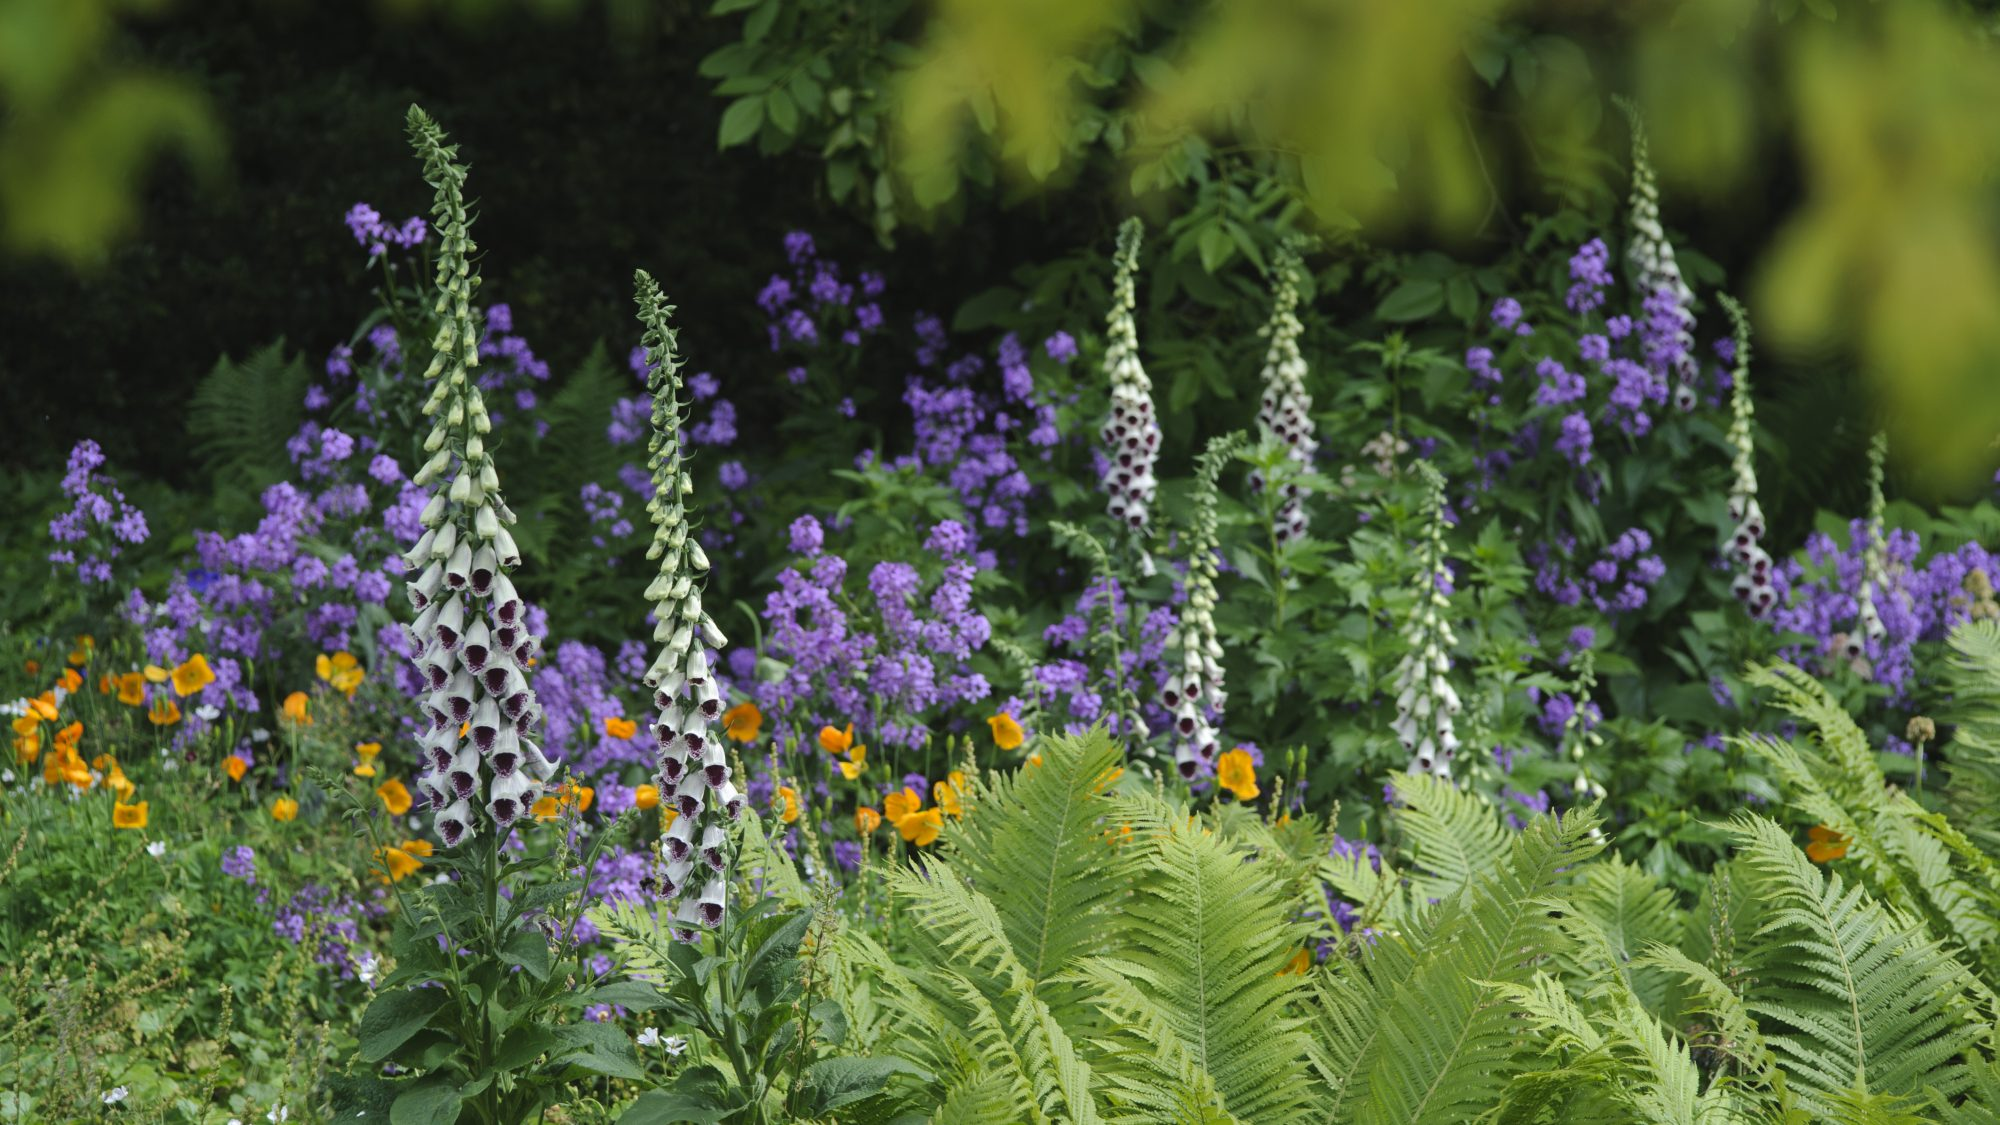 Digitalis interplanted with Polypodiopsida, Escholzia californica 'Orange King' and Hesperis matronalis in the Woodland garden.